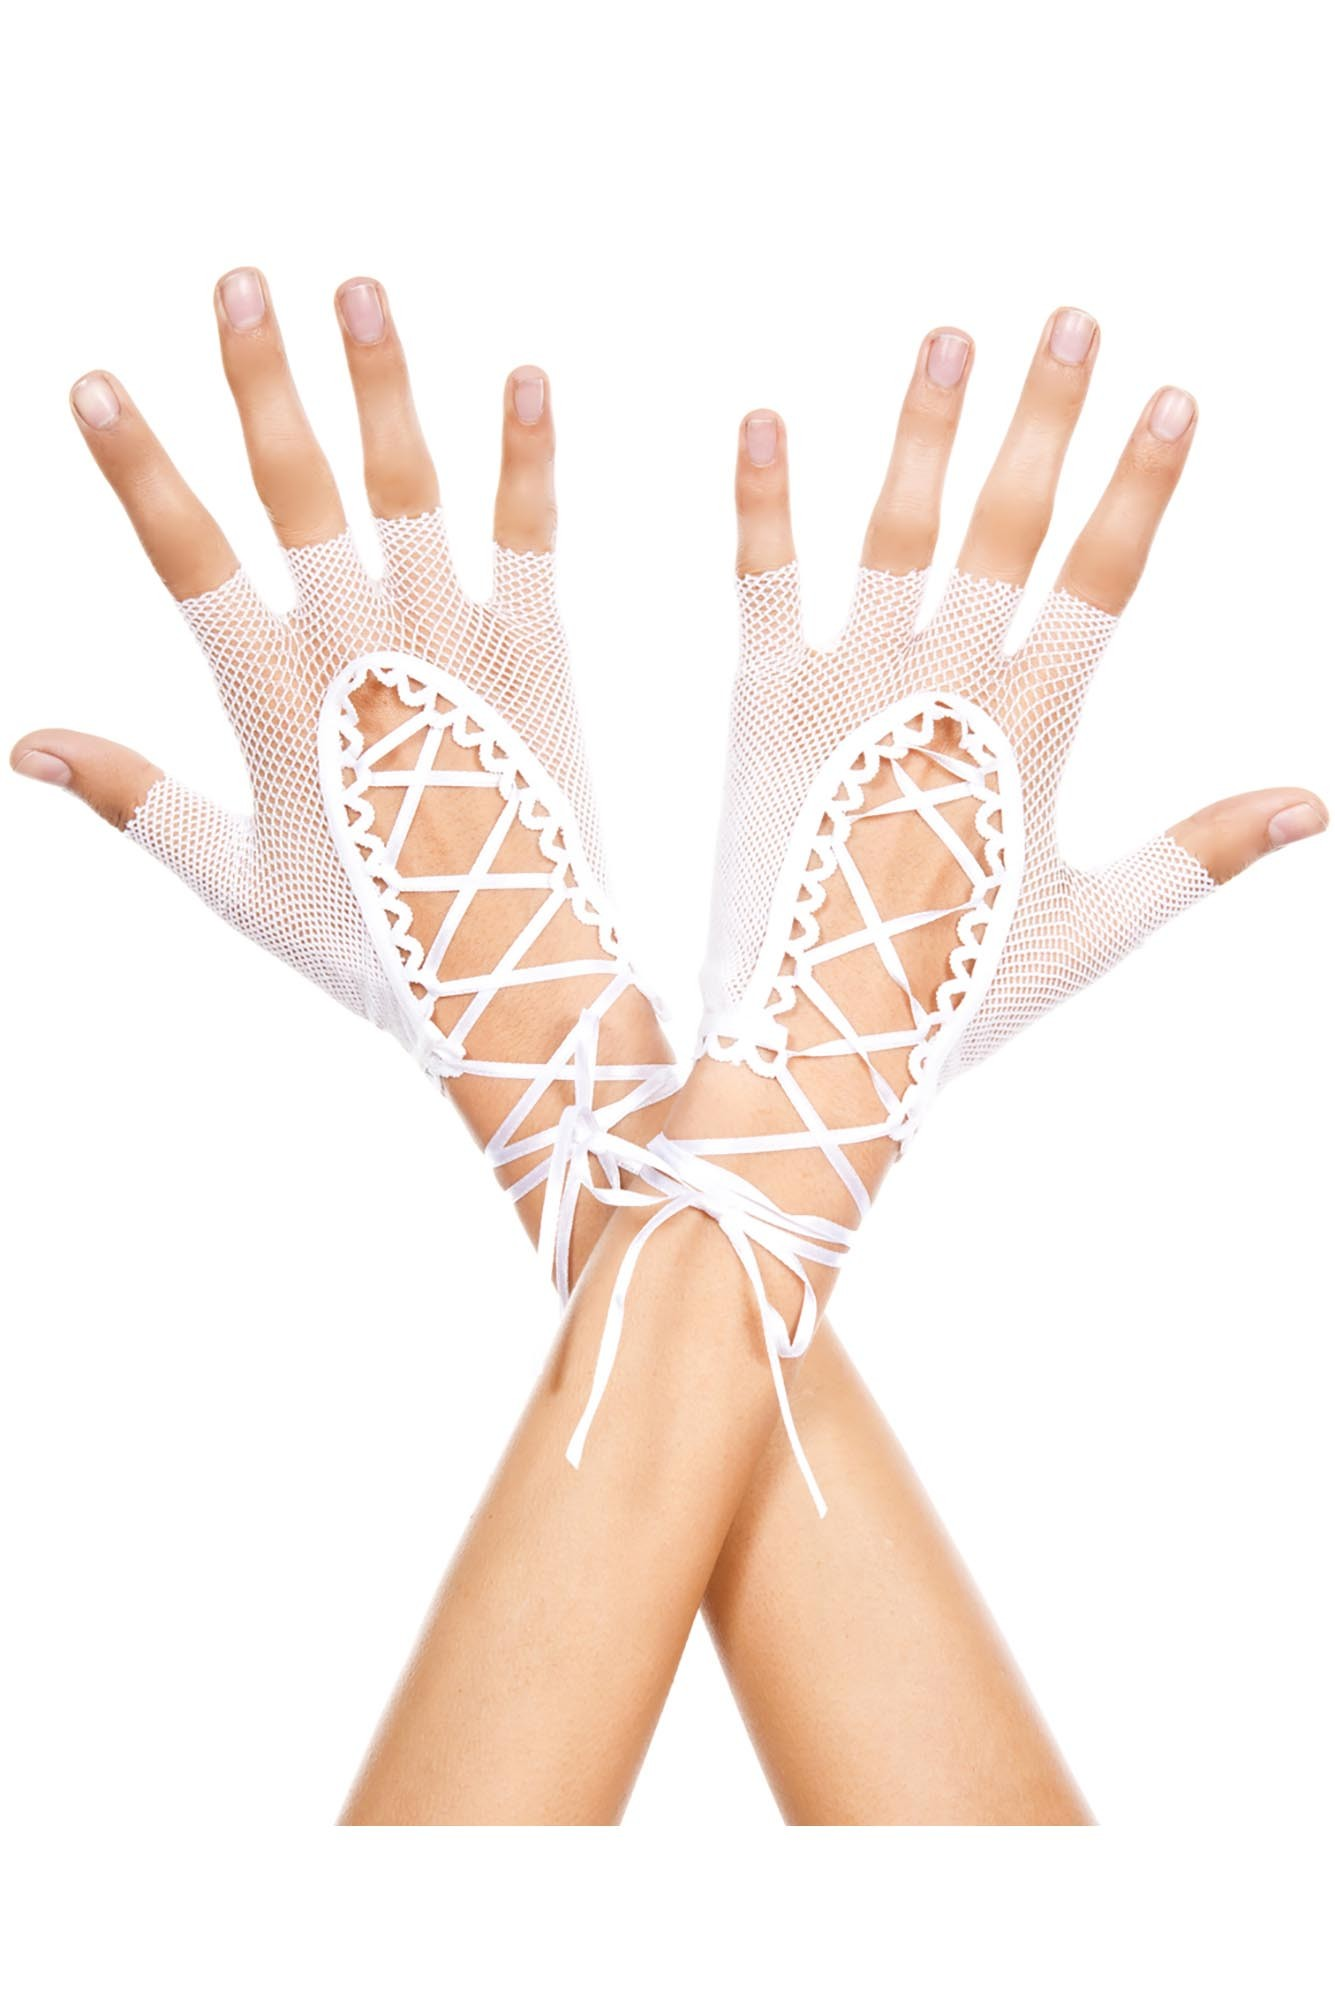 White Wrist Length Lace-up Gloves Fishnet Fingerless 0413 Edmonton